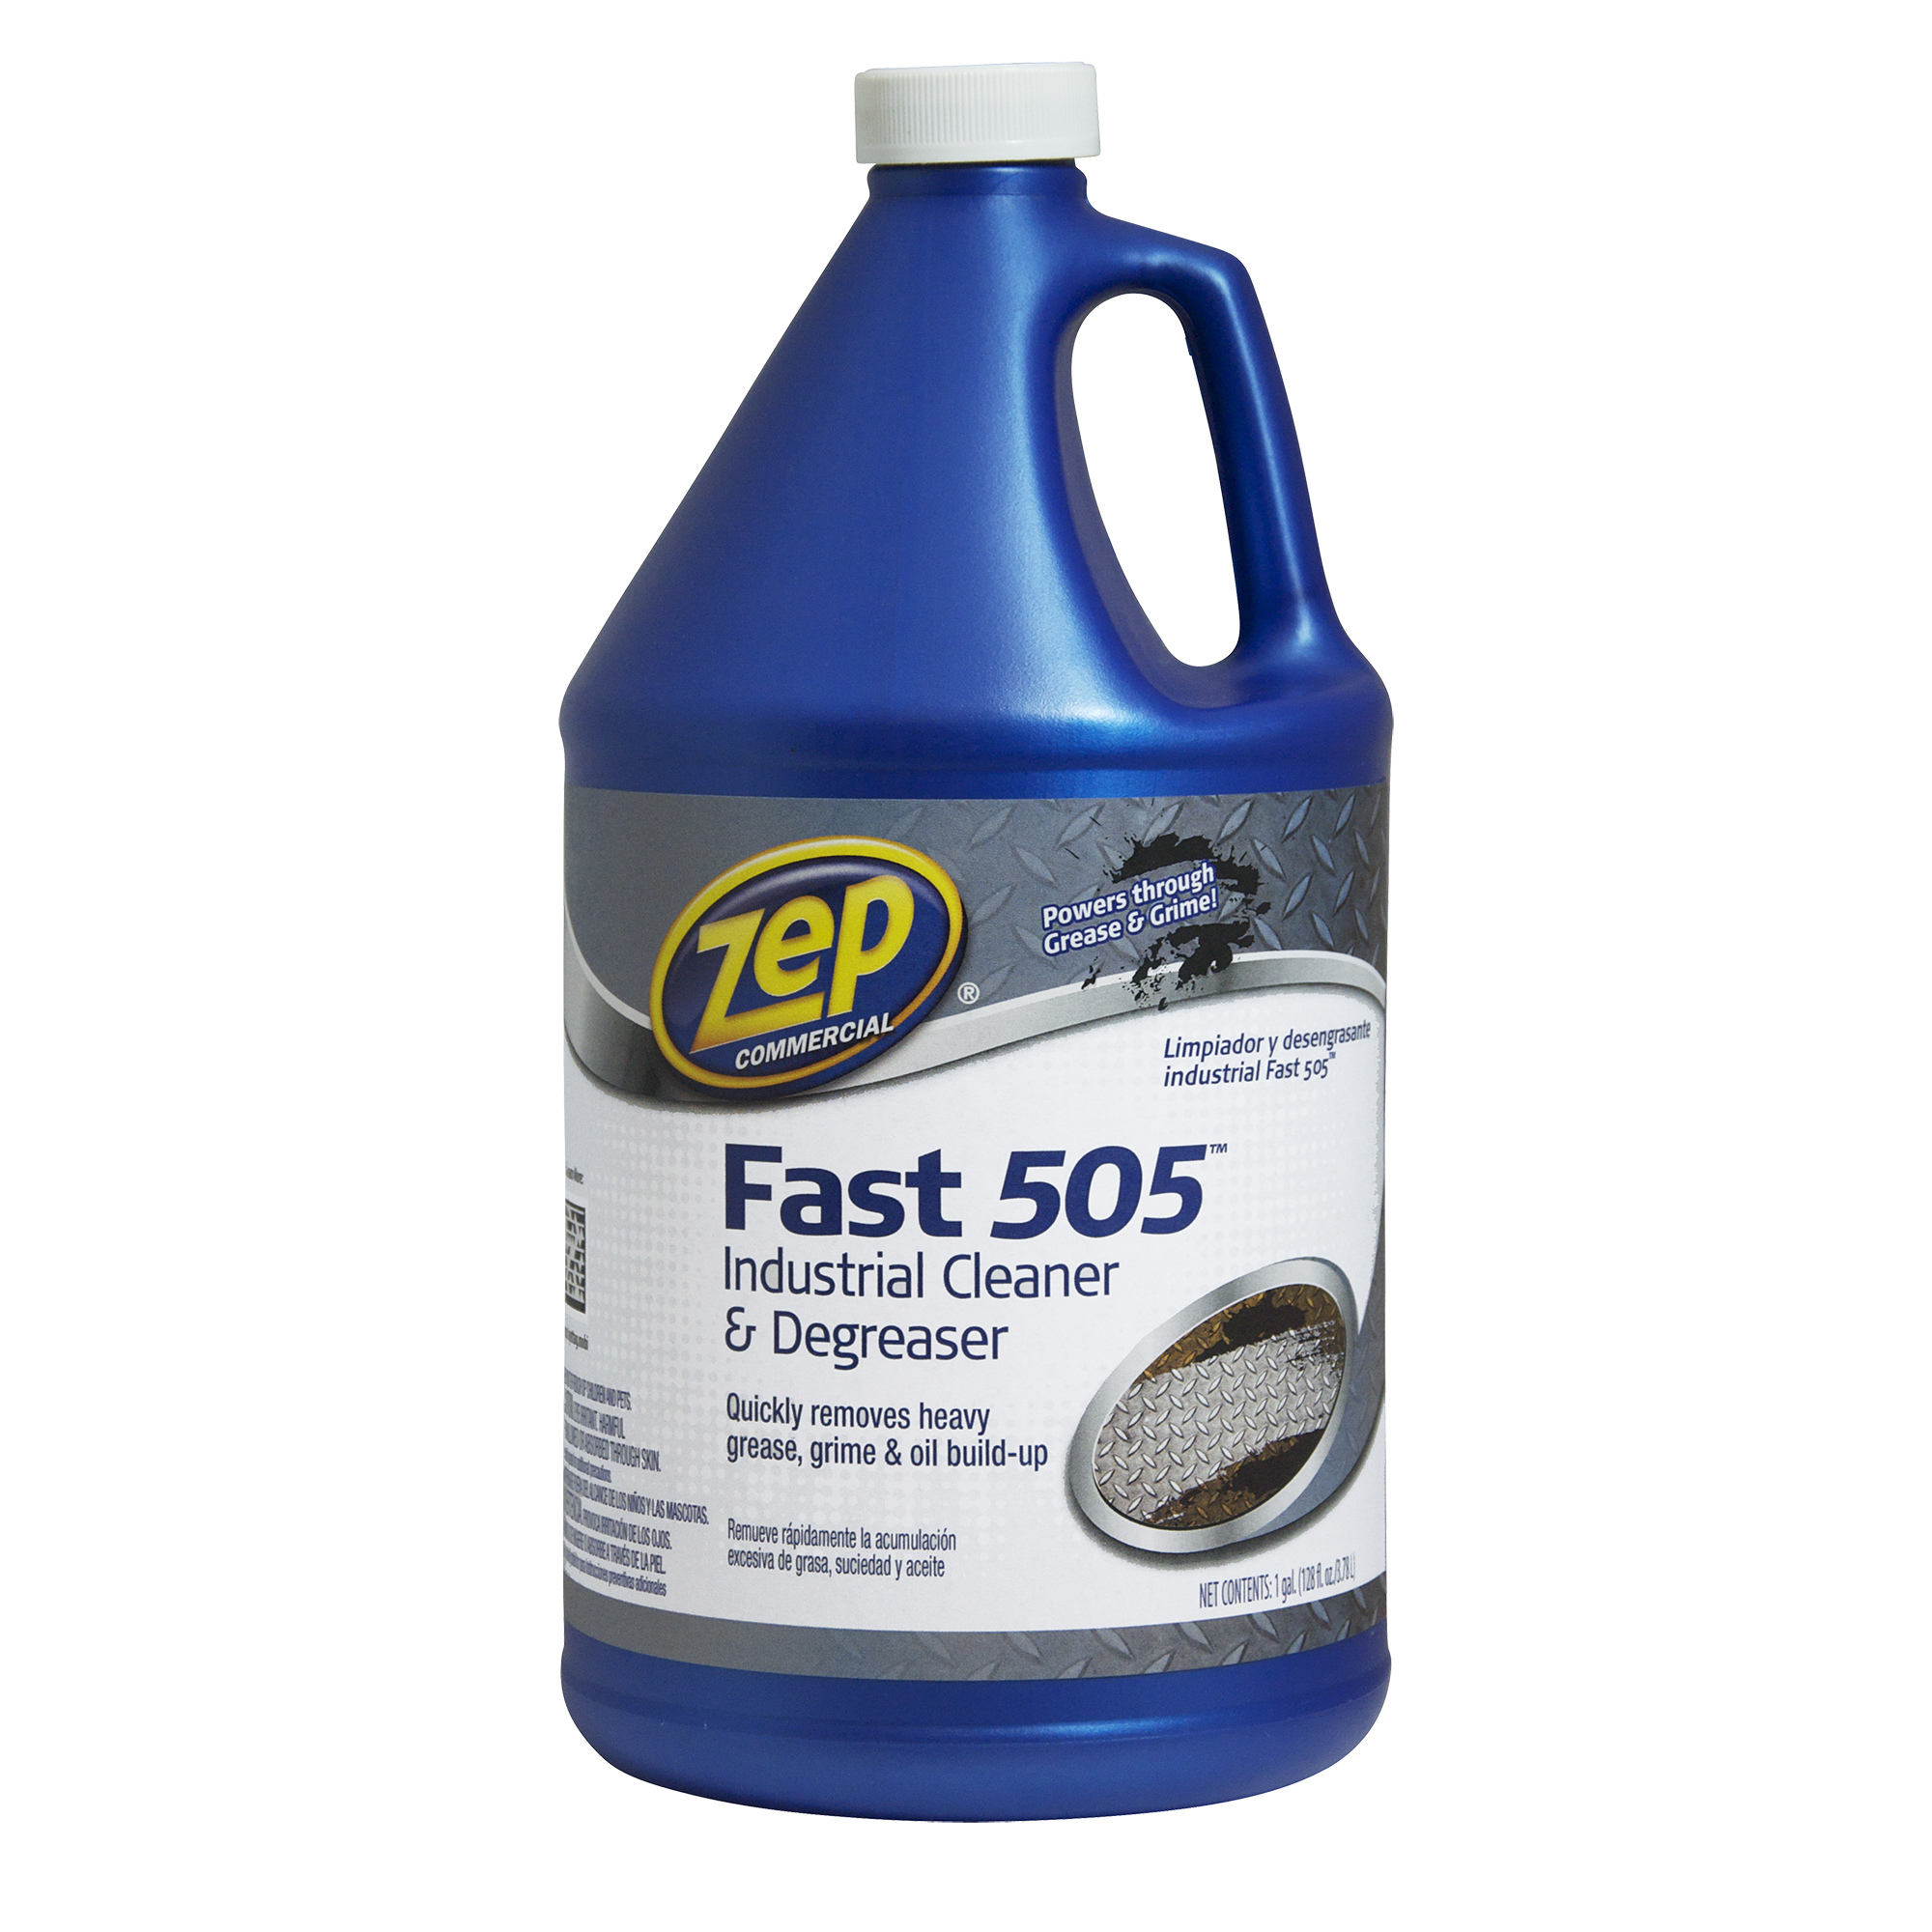 Zep Fast 505 174 Industrial Cleaner Amp Degreaser 1 Gal